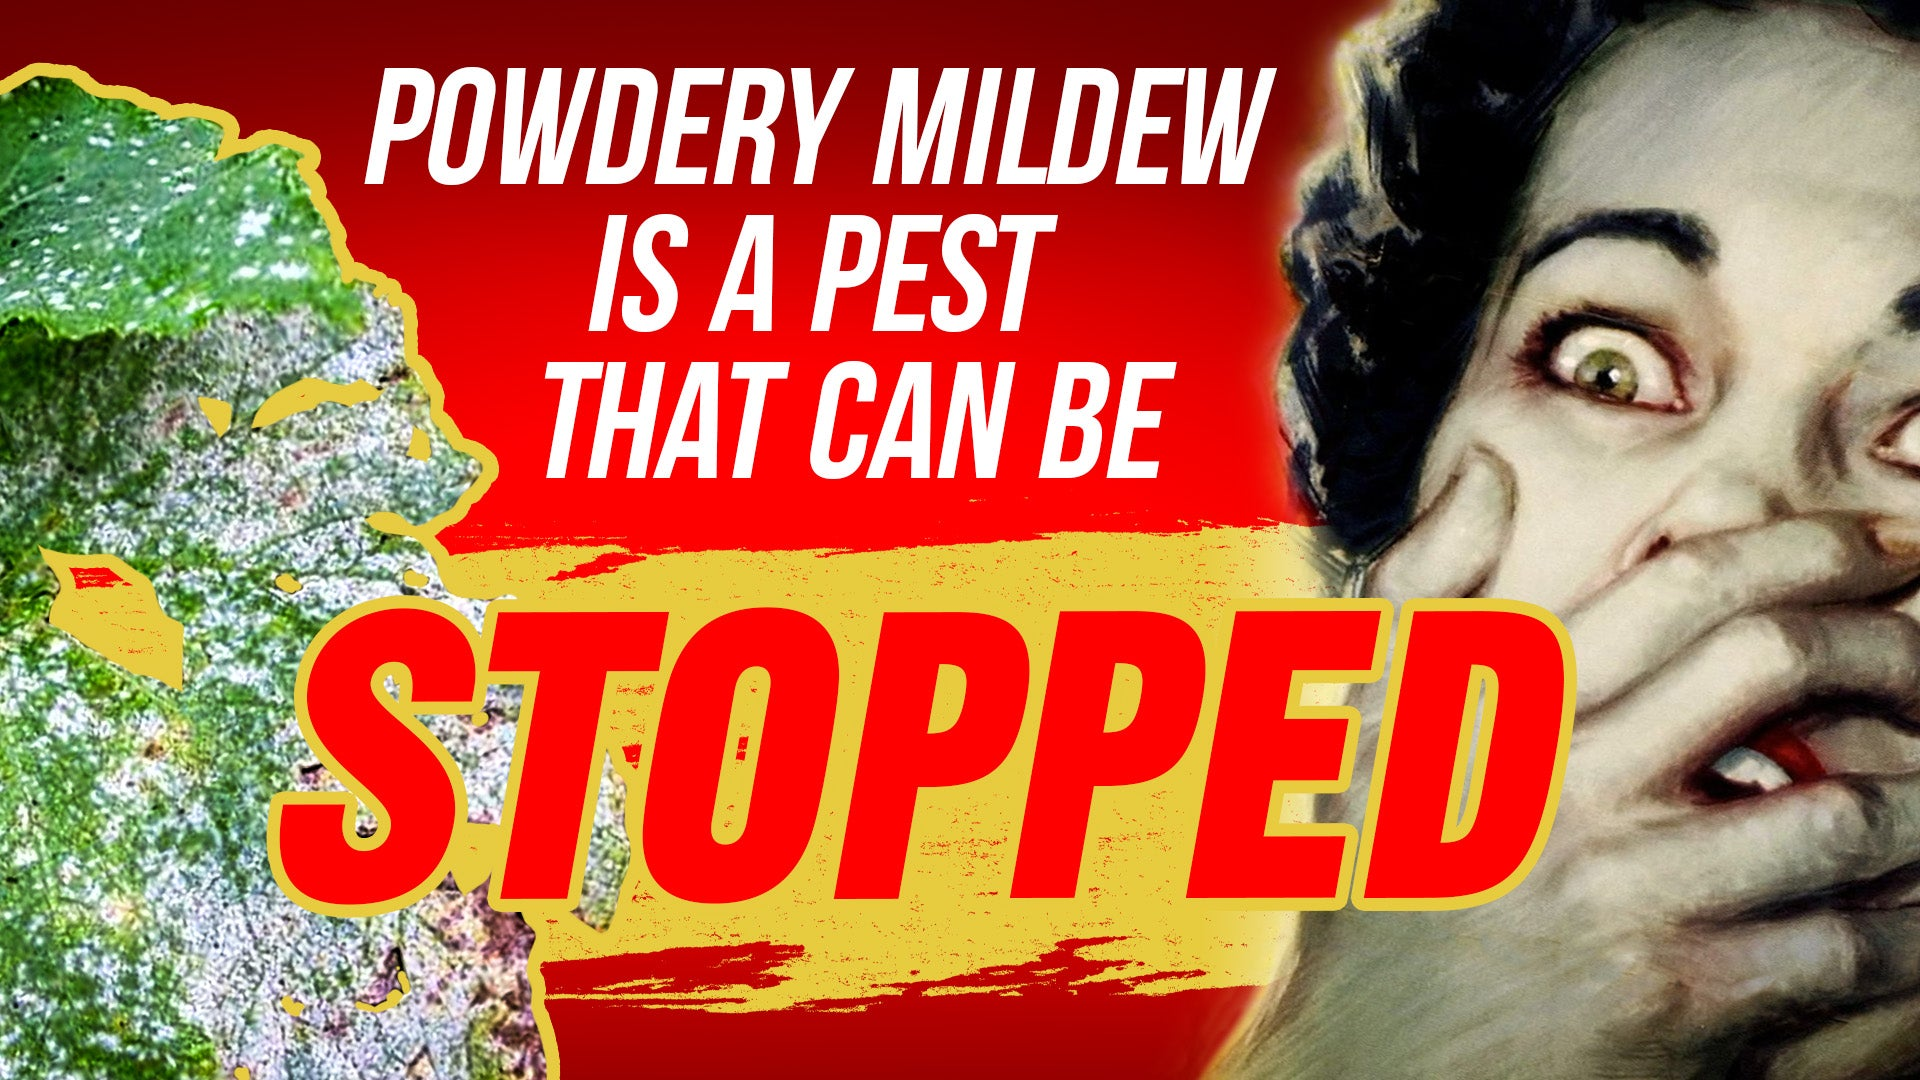 Powdery mildew is a pest that can be stopped